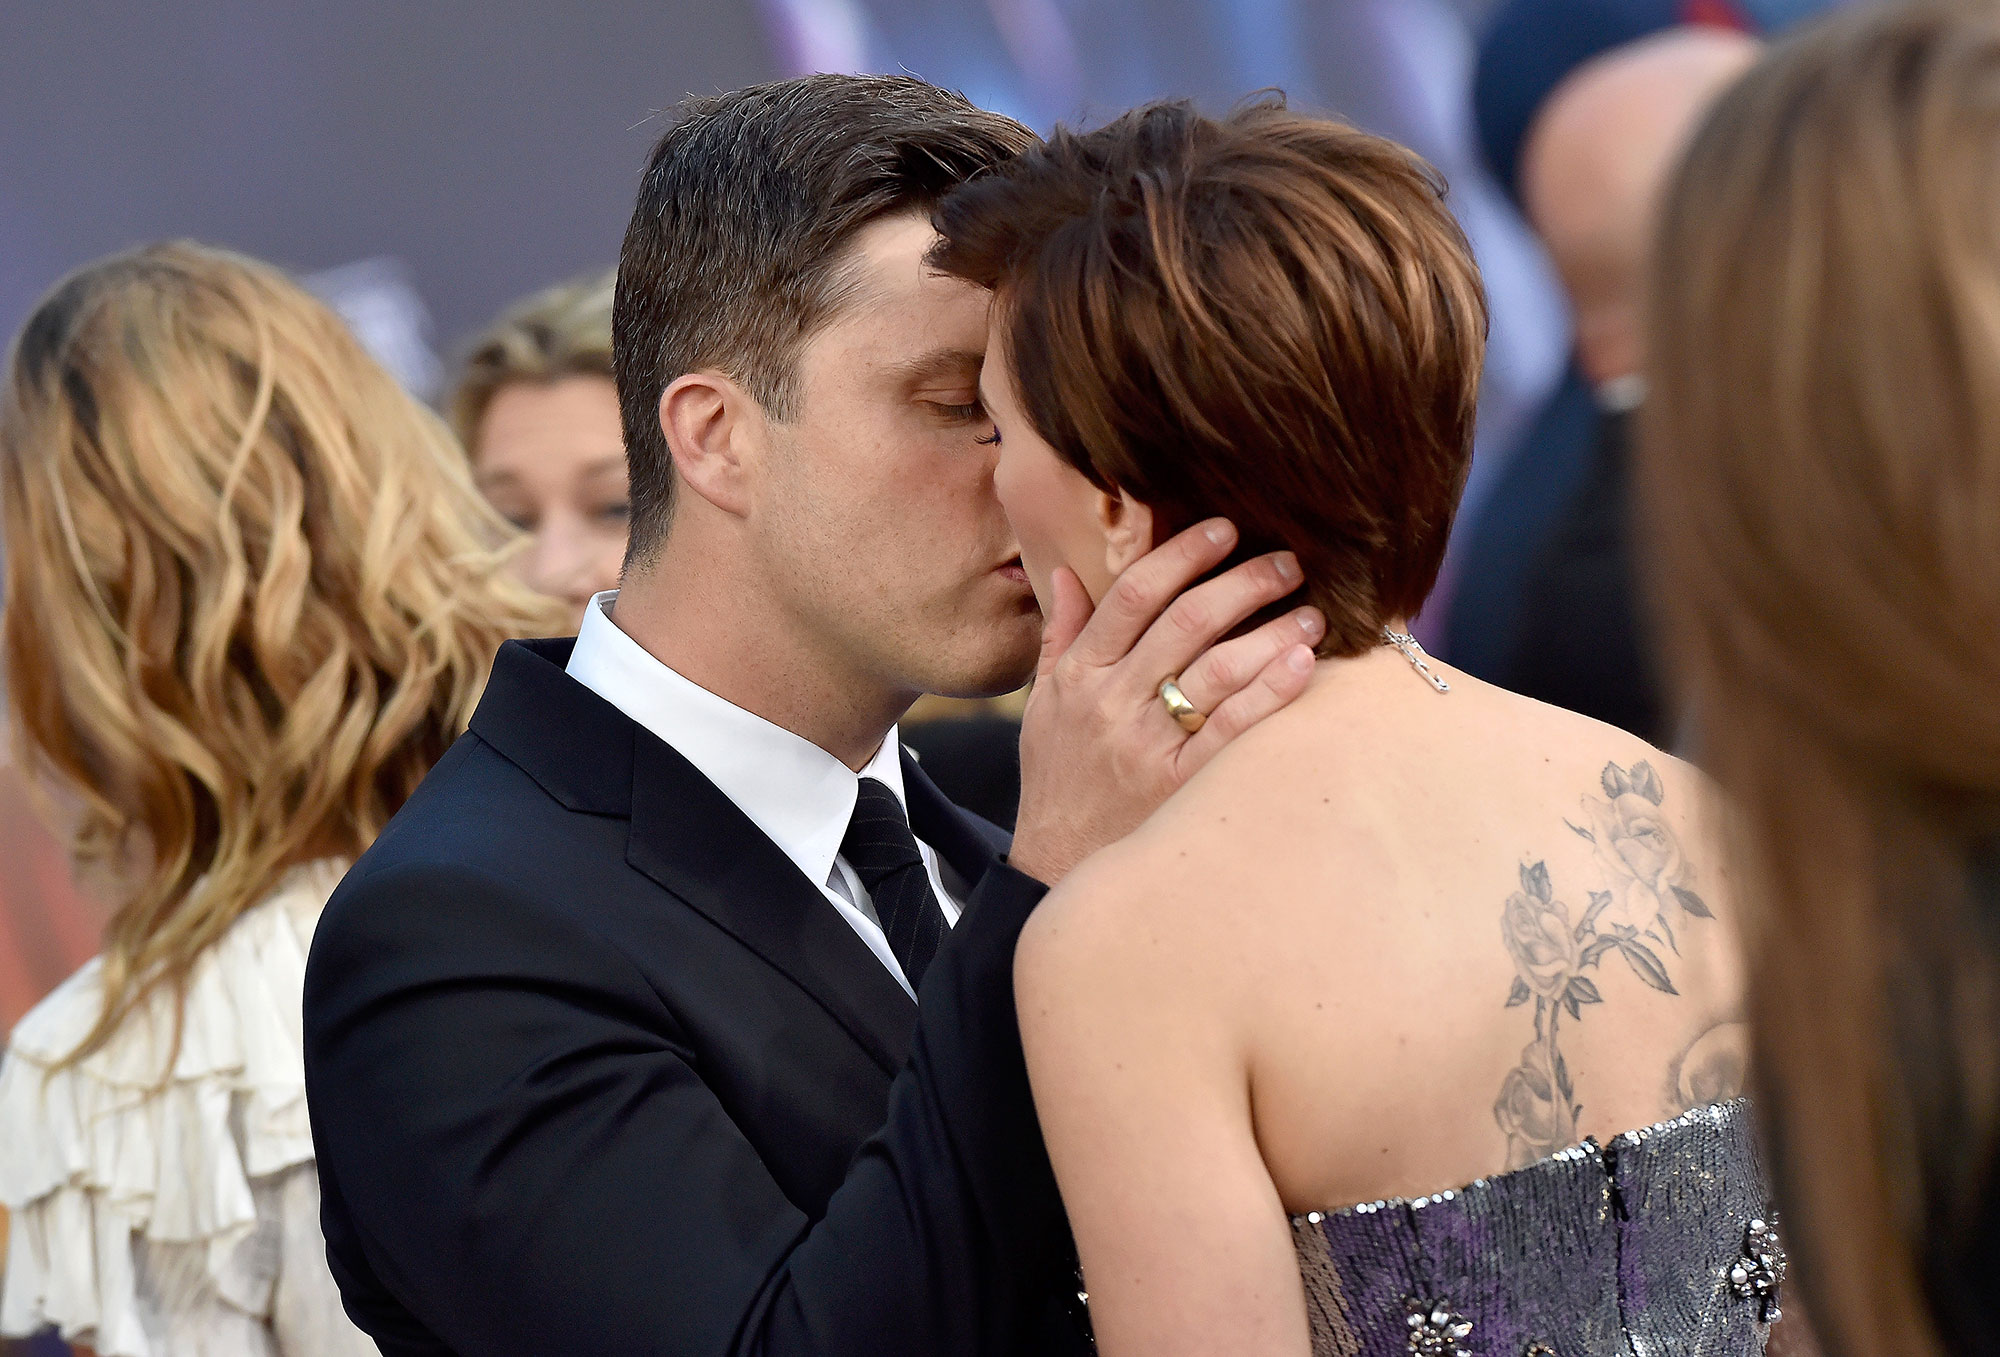 """Scarlett Johansson and Colin Jost Relationship Timeline Avengers Infinity War Kiss - When Leslie Jones joked on """"Weekend Update"""" that she could never date Jost """"because he's gay,"""" he fired back, """"I'm not gay! I told you, I have a girlfriend!"""""""